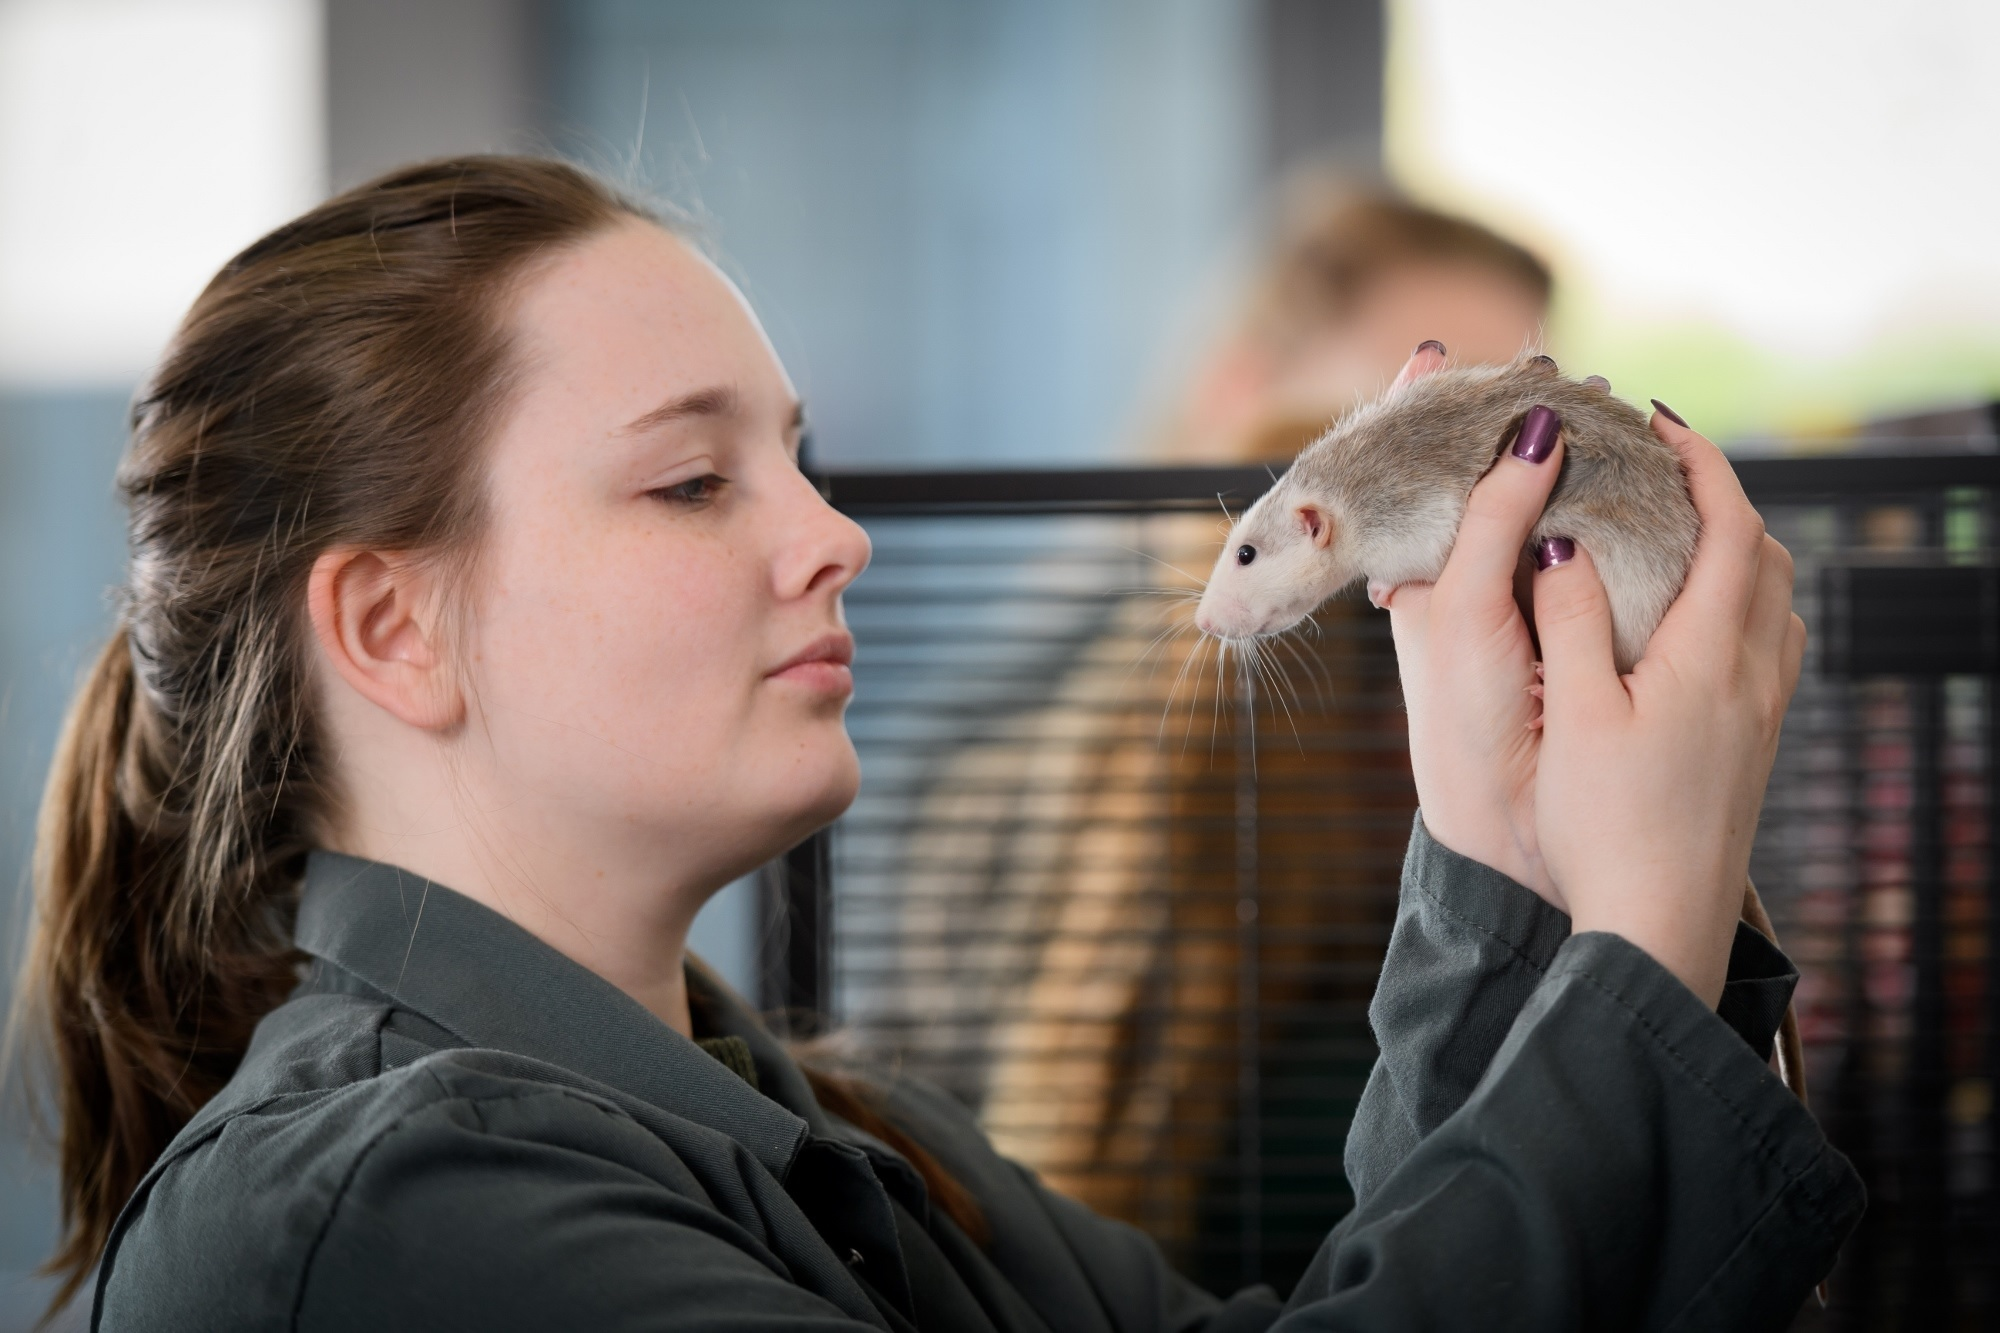 Pershore College has a specialist animal centre which offers a range of courses in animal welfare and veterinary nursing